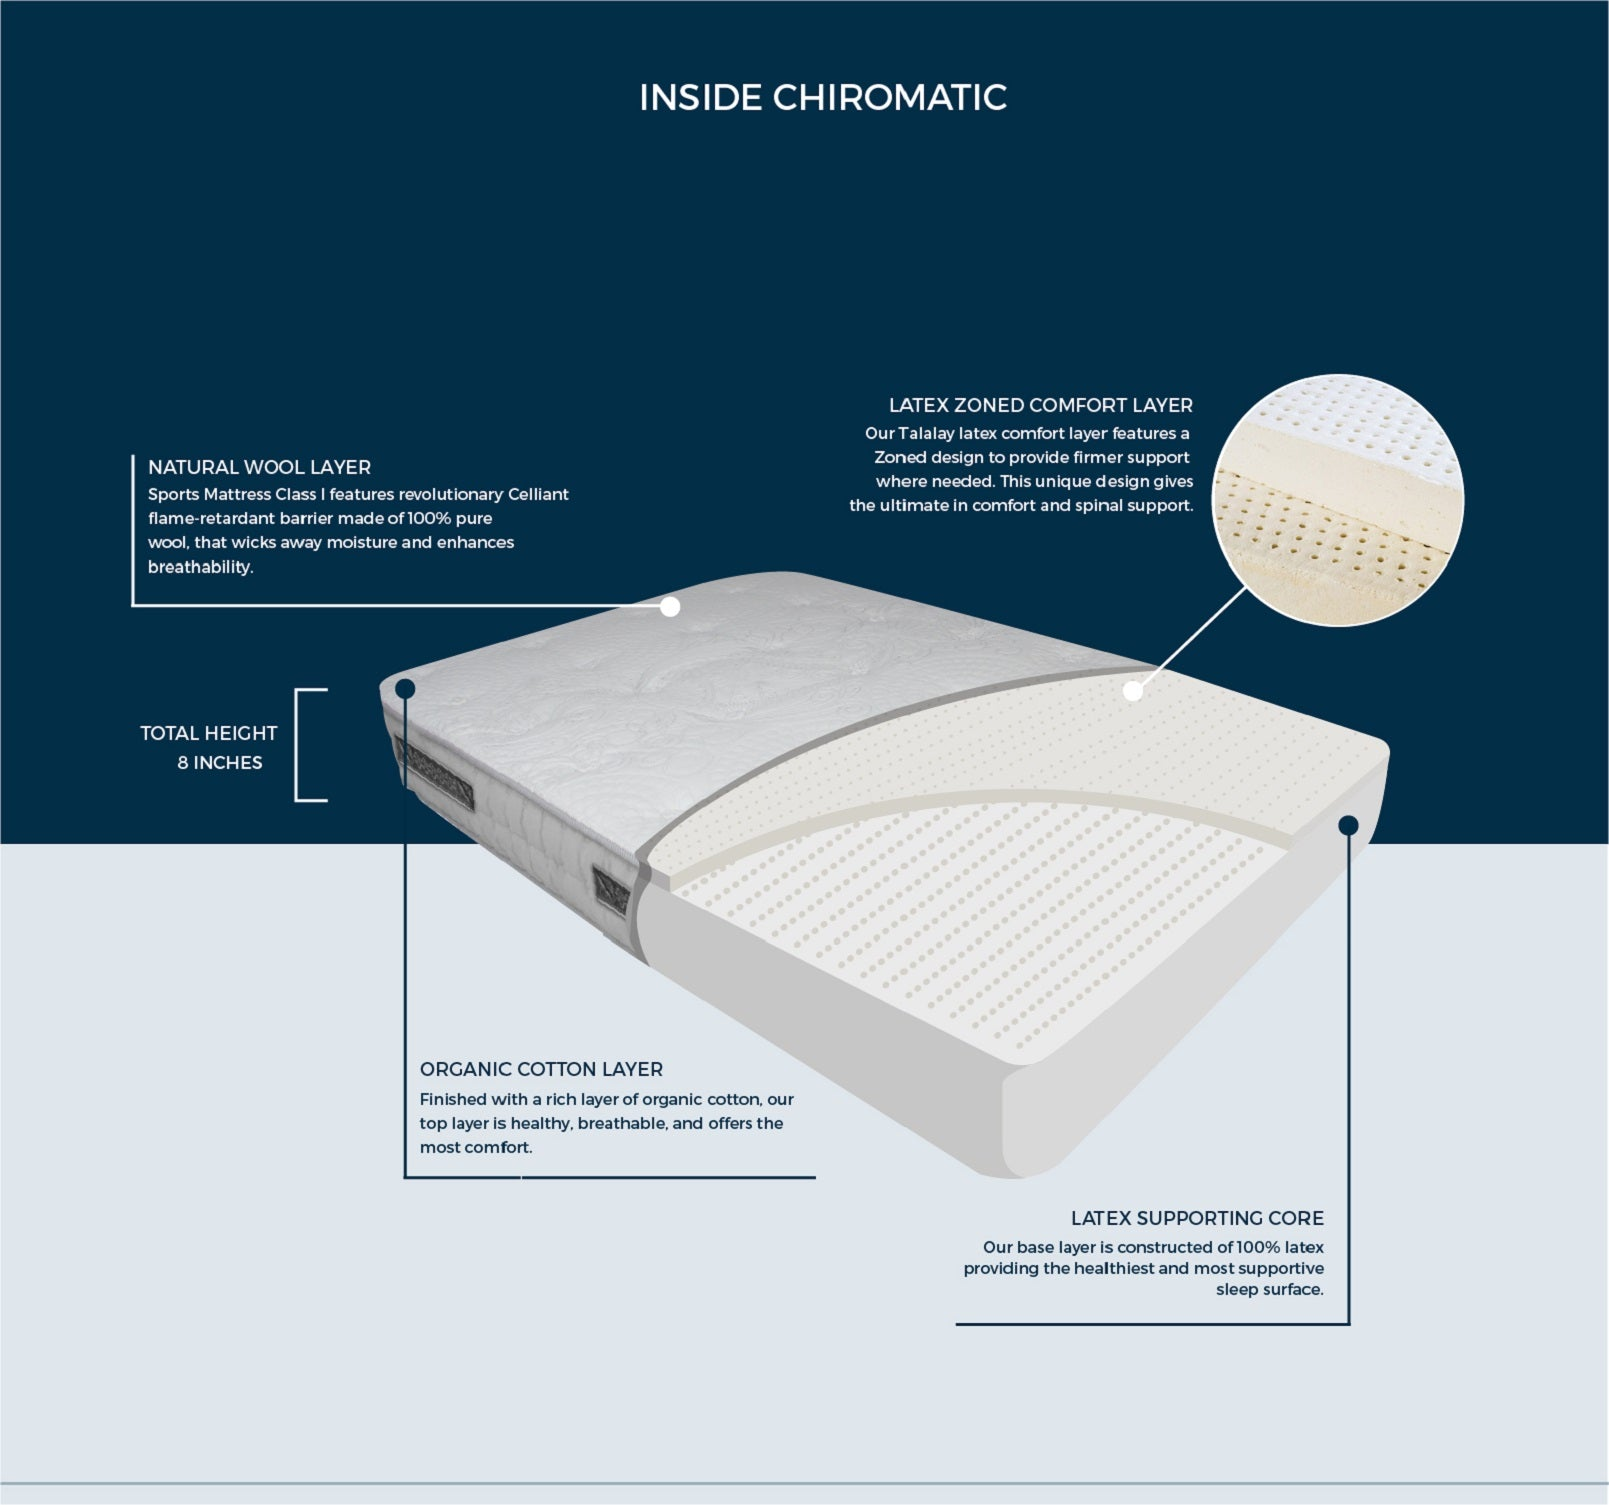 natural latex is the most luxurious sleep surface our 100 natural american talalay latex adapts to every curve of your body for comfort and - Talalay Latex